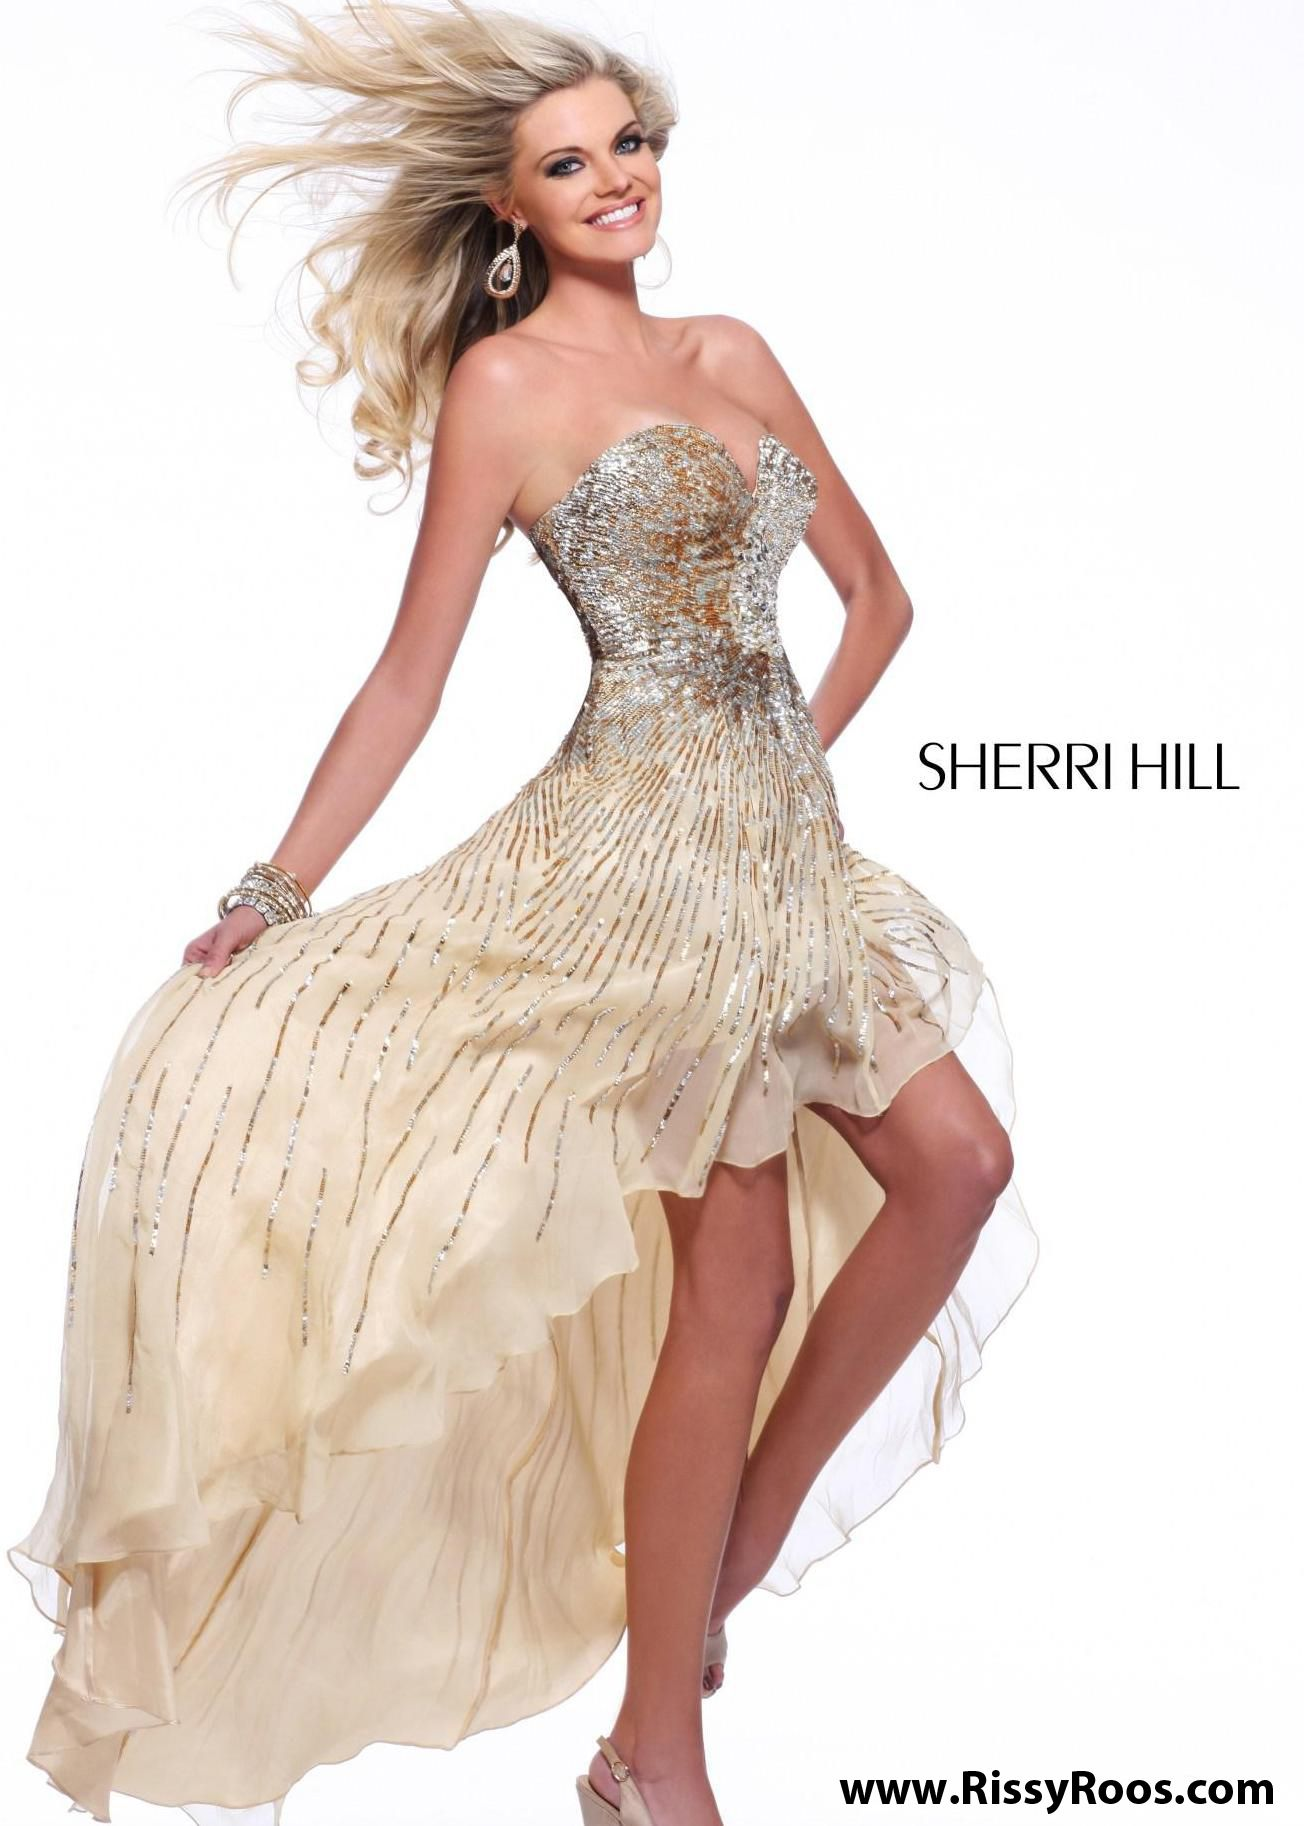 Find sherri hill nude sweetheart high low prom dresses